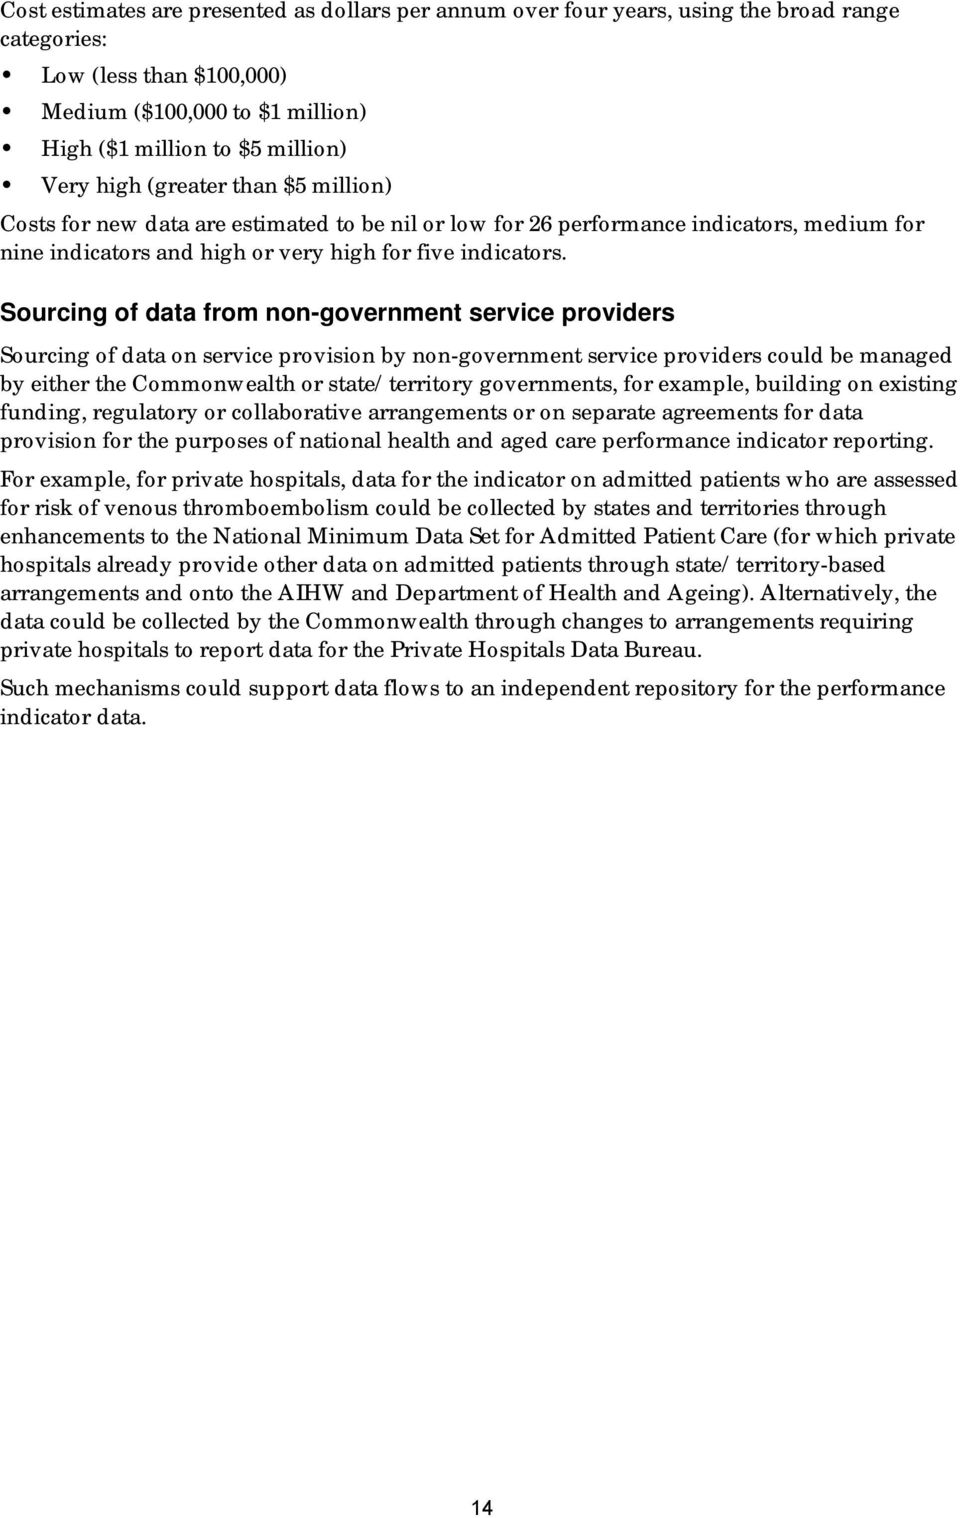 Sourcing of data from non-government service providers Sourcing of data on service provision by non-government service providers could be managed by either the Commonwealth or state/territory